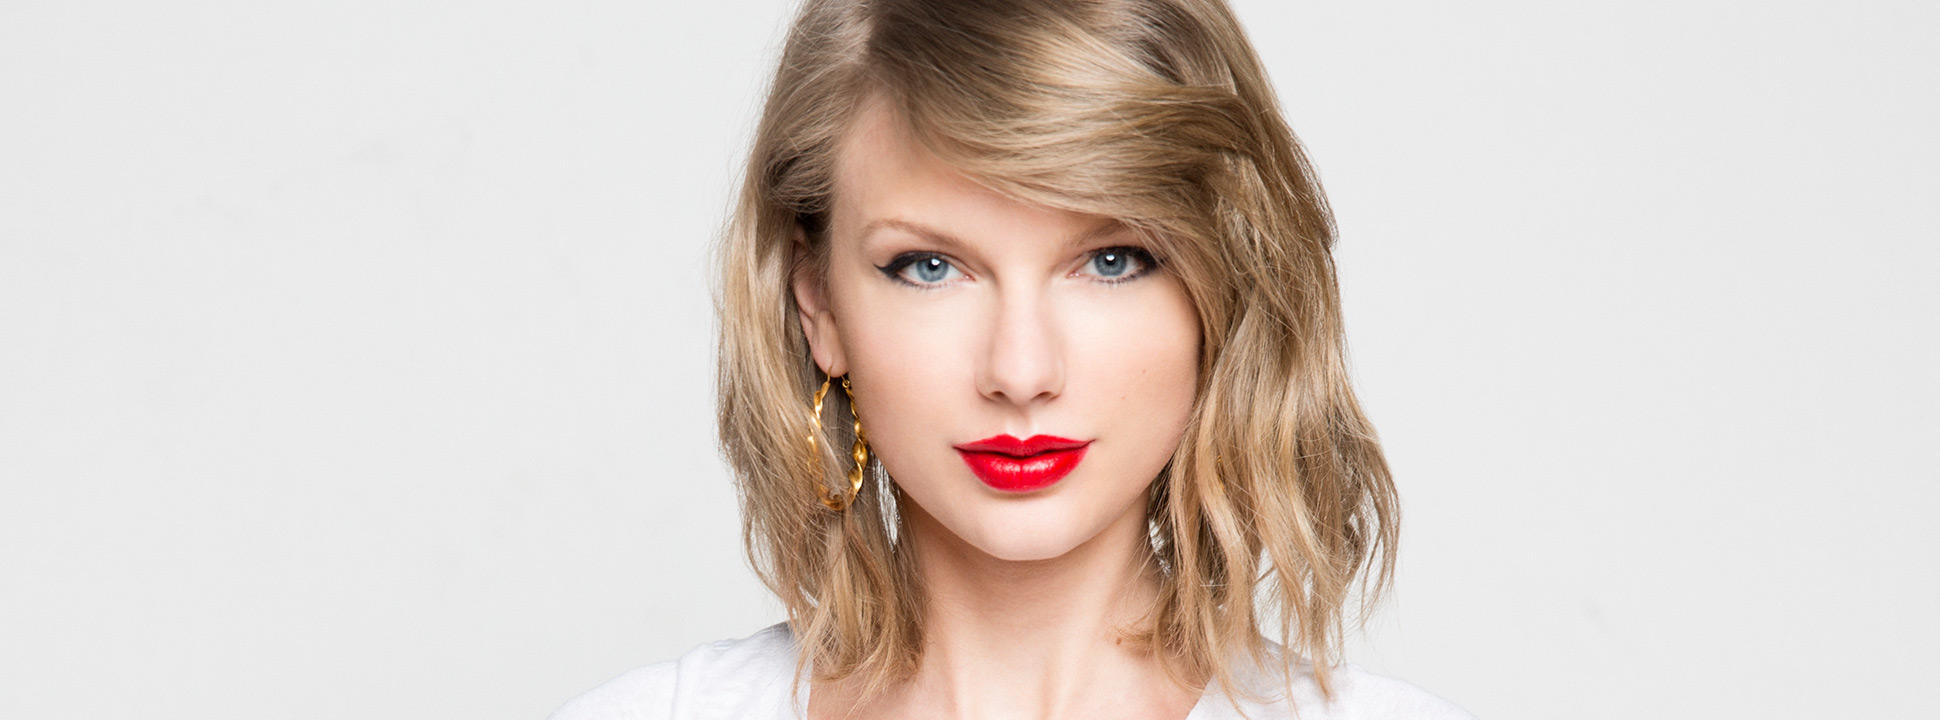 Happy Birthday Taylor Swift